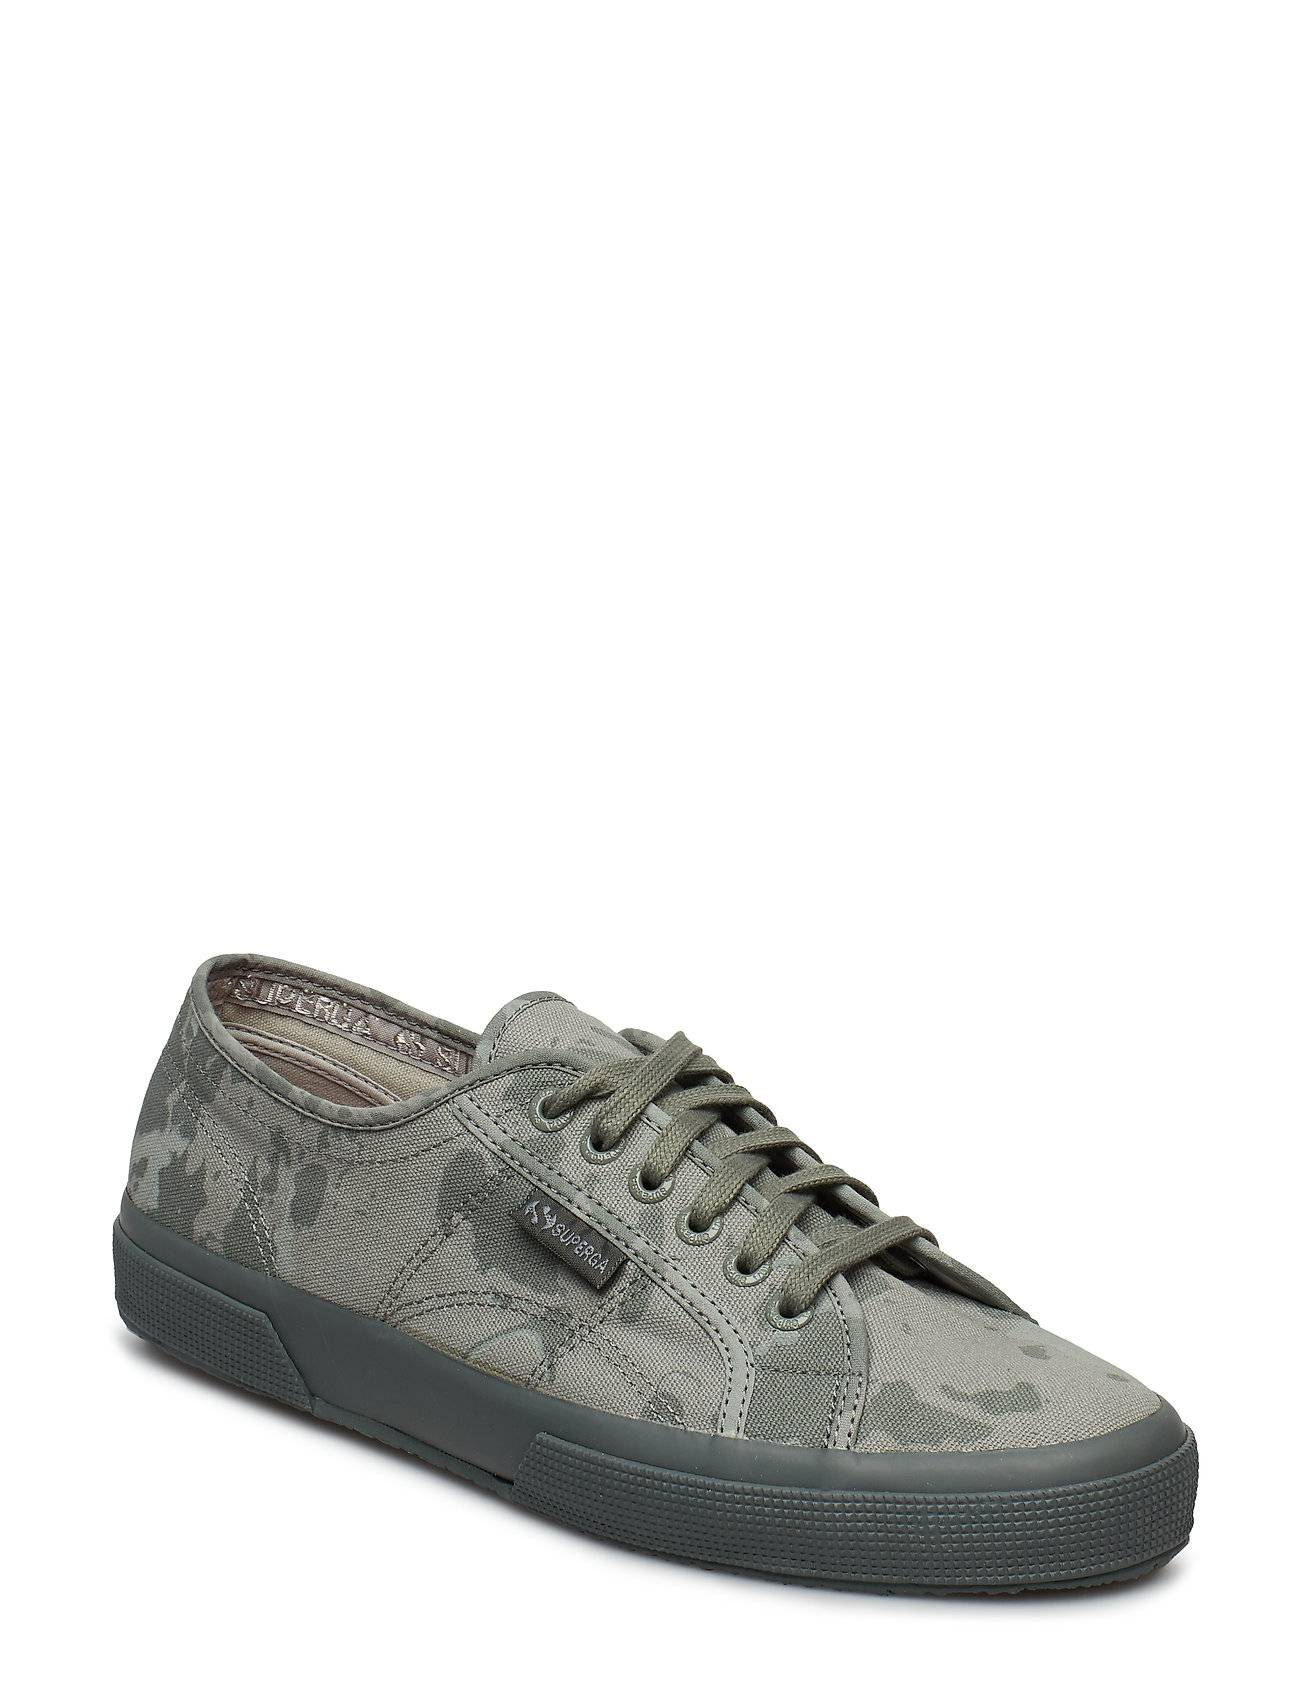 Superga 2750 Fancotu Matalavartiset Sneakerit Tennarit Harmaa Superga